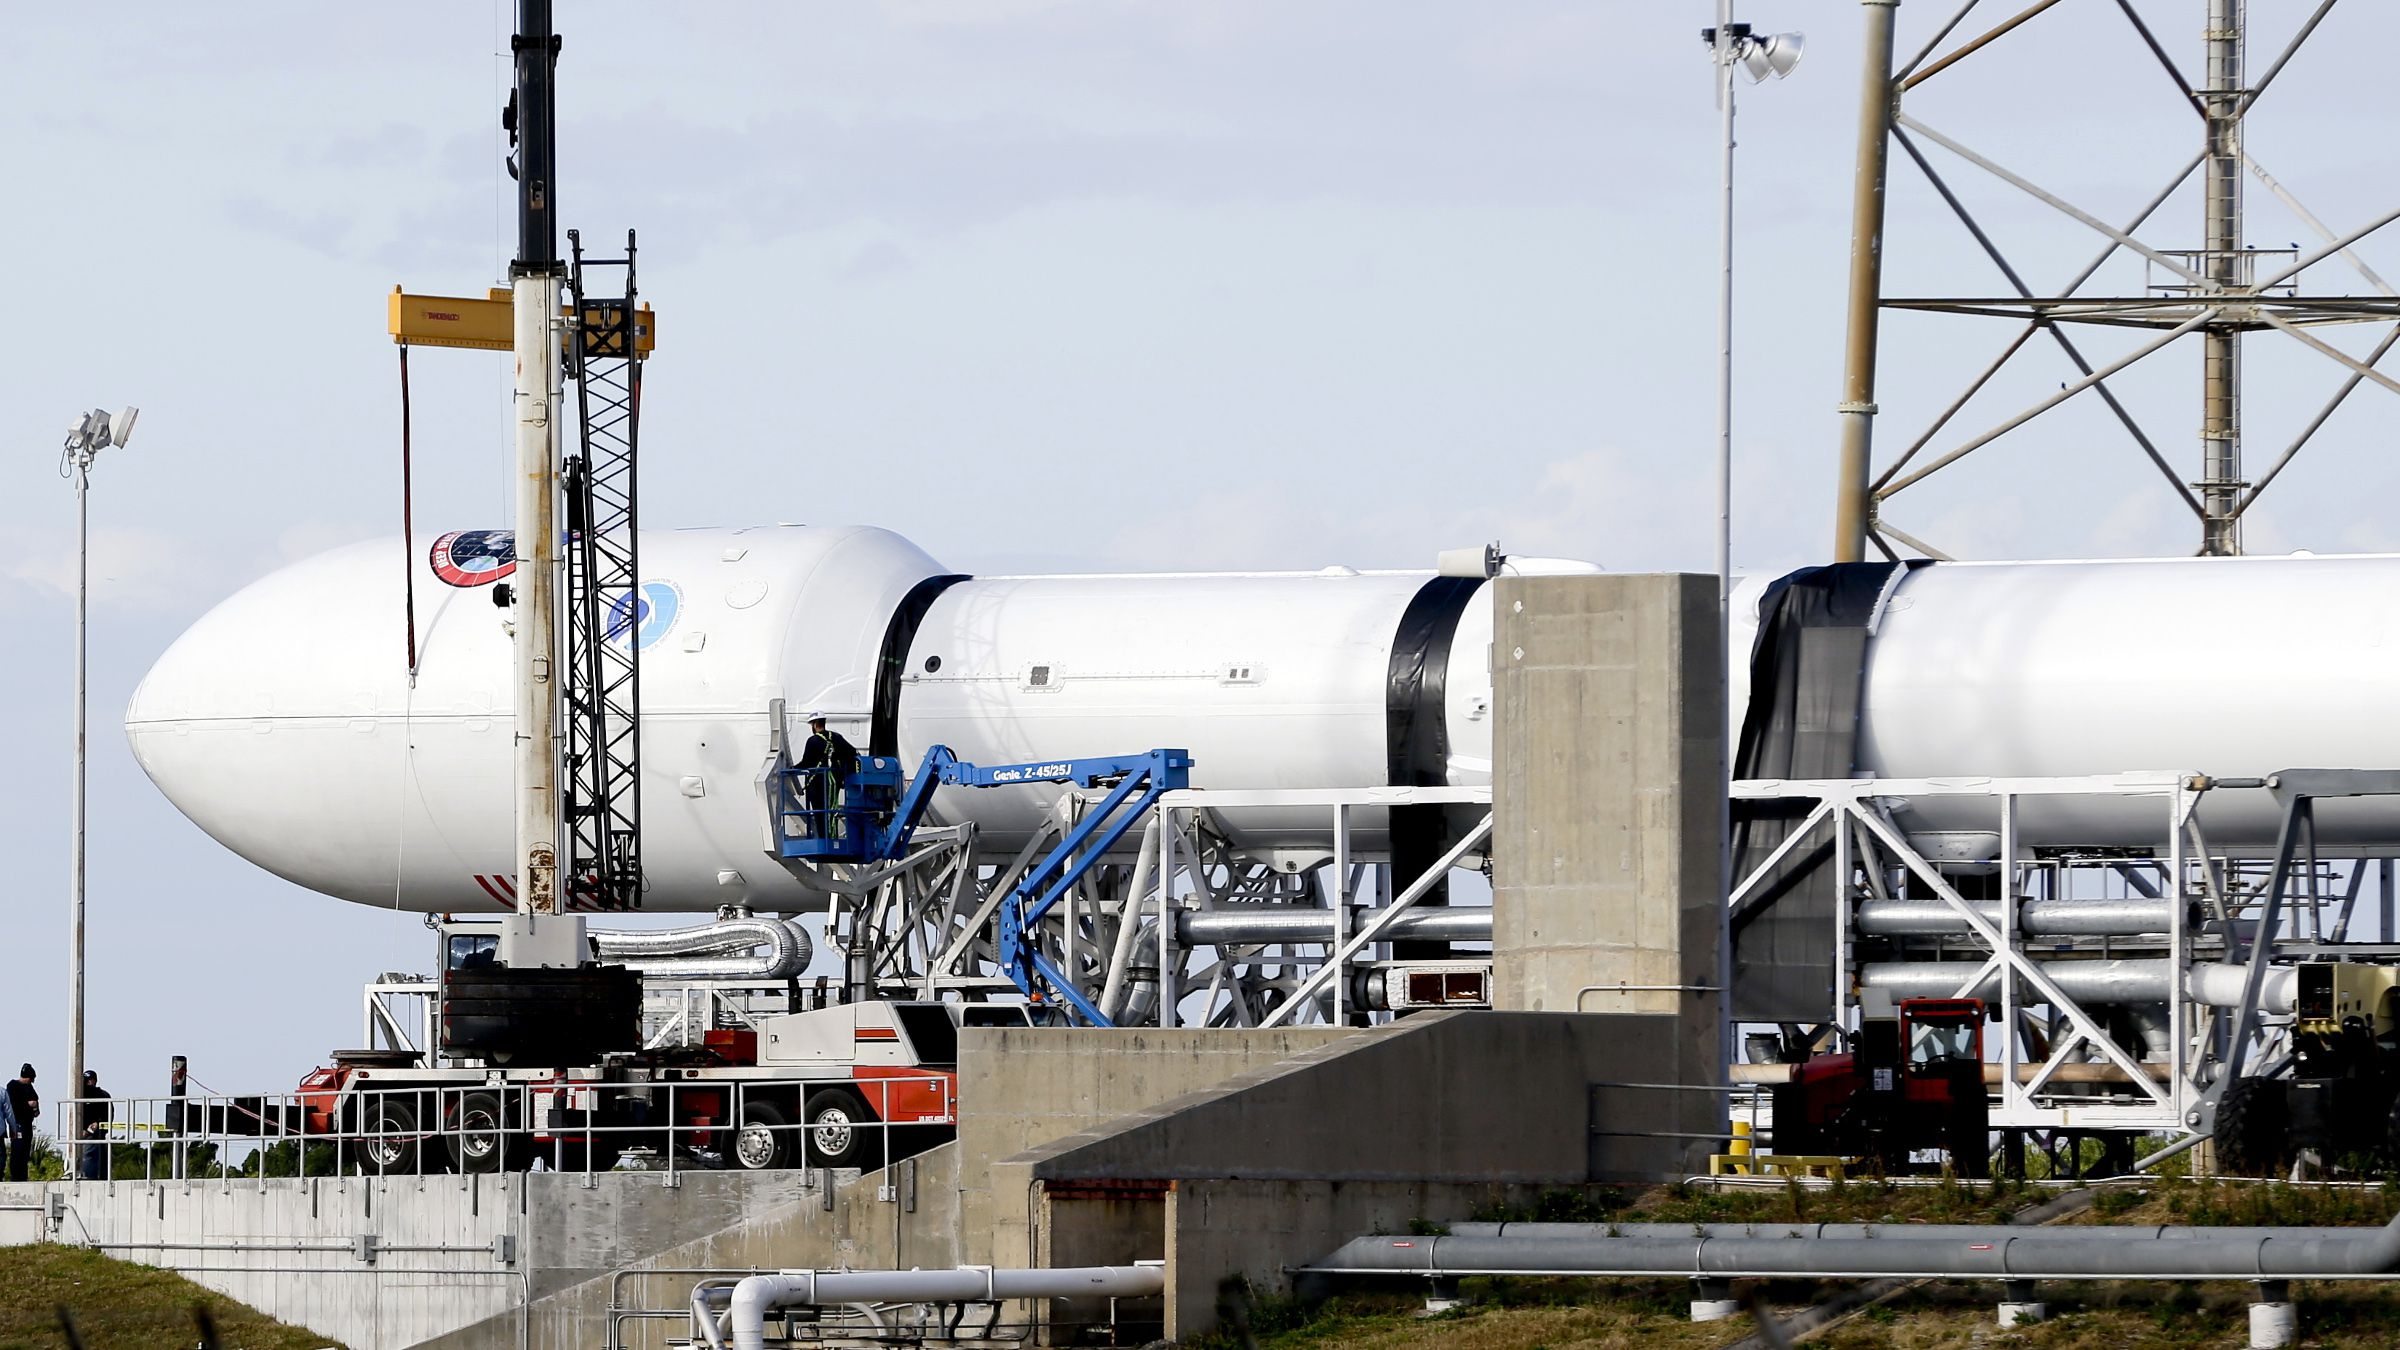 Maintenance is performed by workers on the Falcon 9 SpaceX rocket at launch complex 40 at the Cape Canaveral Air Force Station in Cape Canaveral, Fla., Monday, Feb. 9, 2015. The Sunday launch attempt was scrubbed and SpaceX will try again on Tuesday evening, Feb. 10.